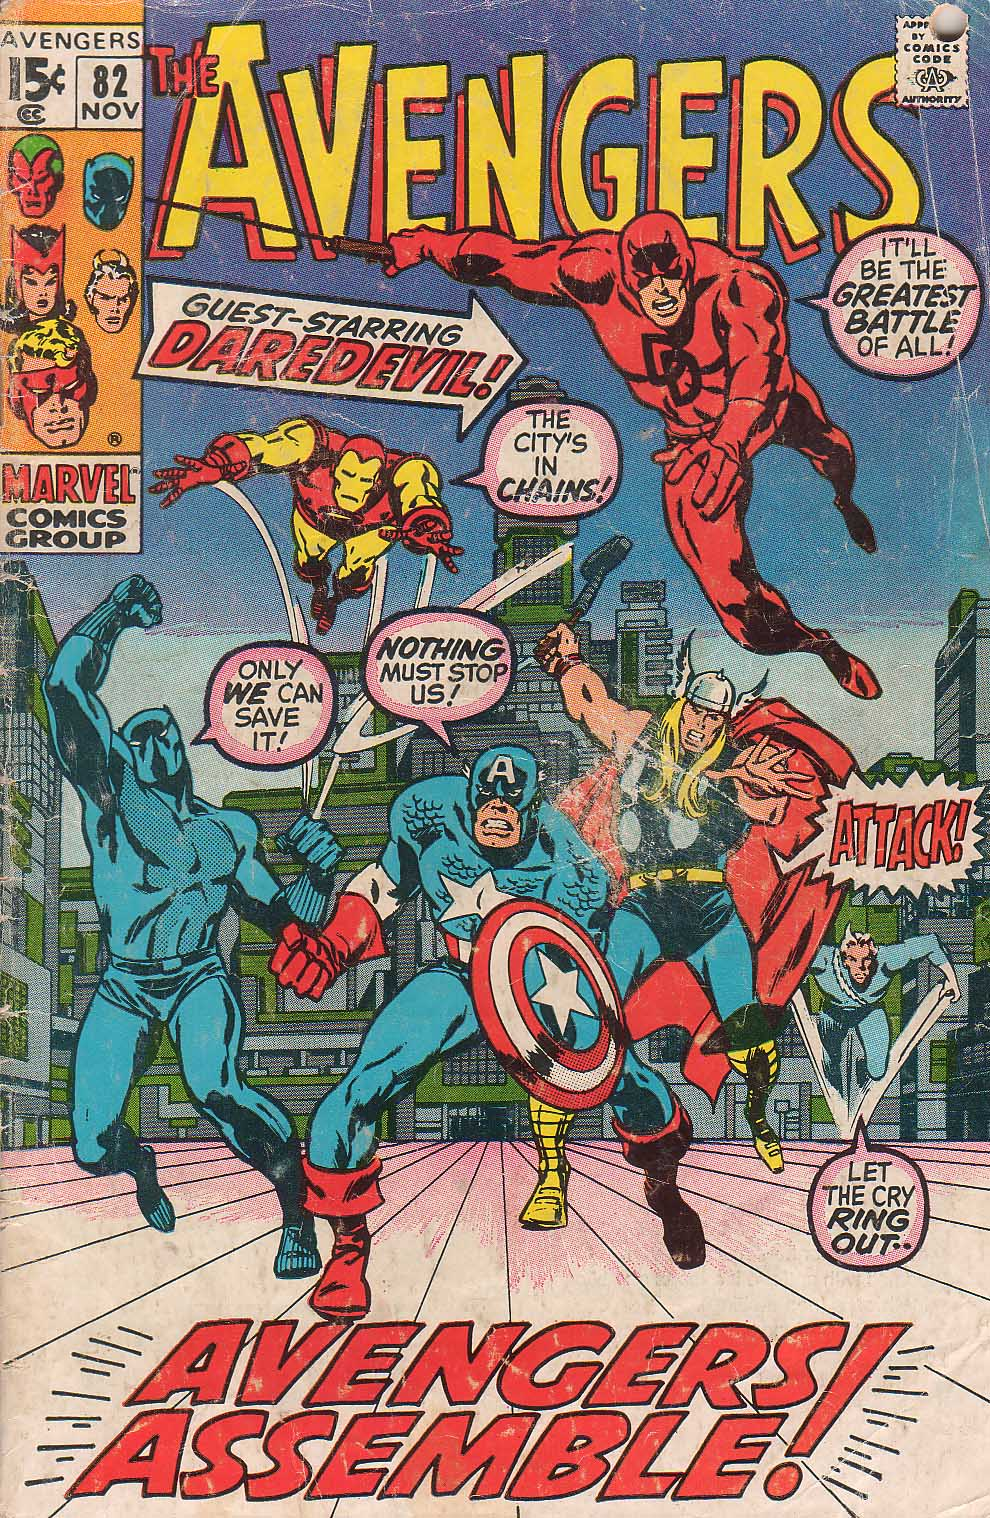 The Avengers (1963) issue 82 - Page 1